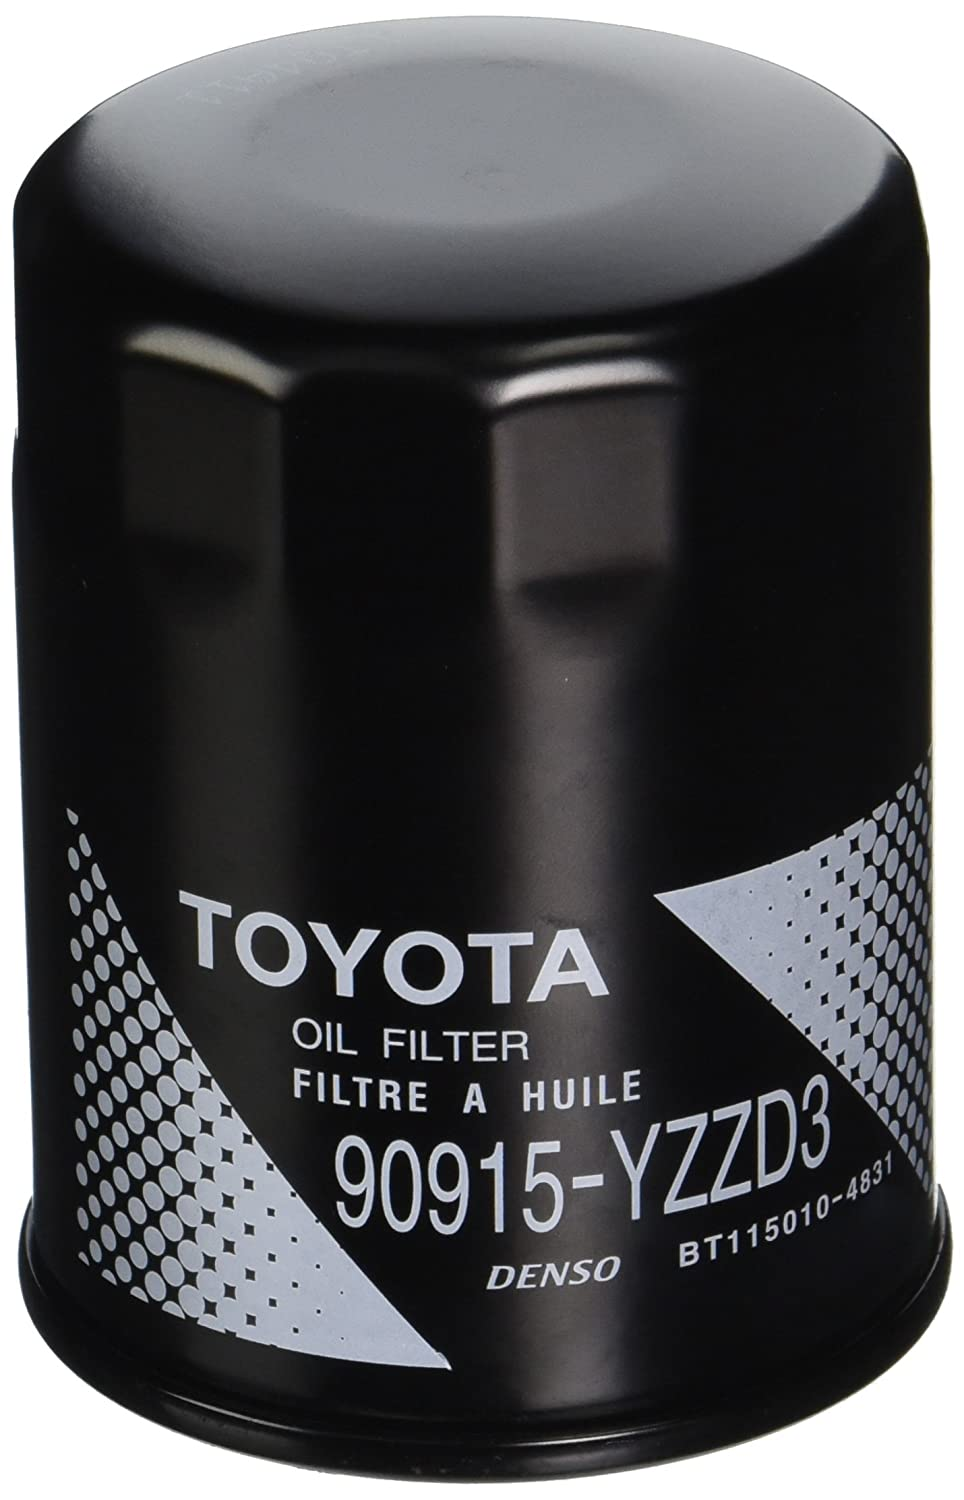 Toyota Genuine Parts 90915 Yzzd3 Oil Filter 1 2 Case 2010 Ford F 150 Fuel Wrench Qty 5 Automotive